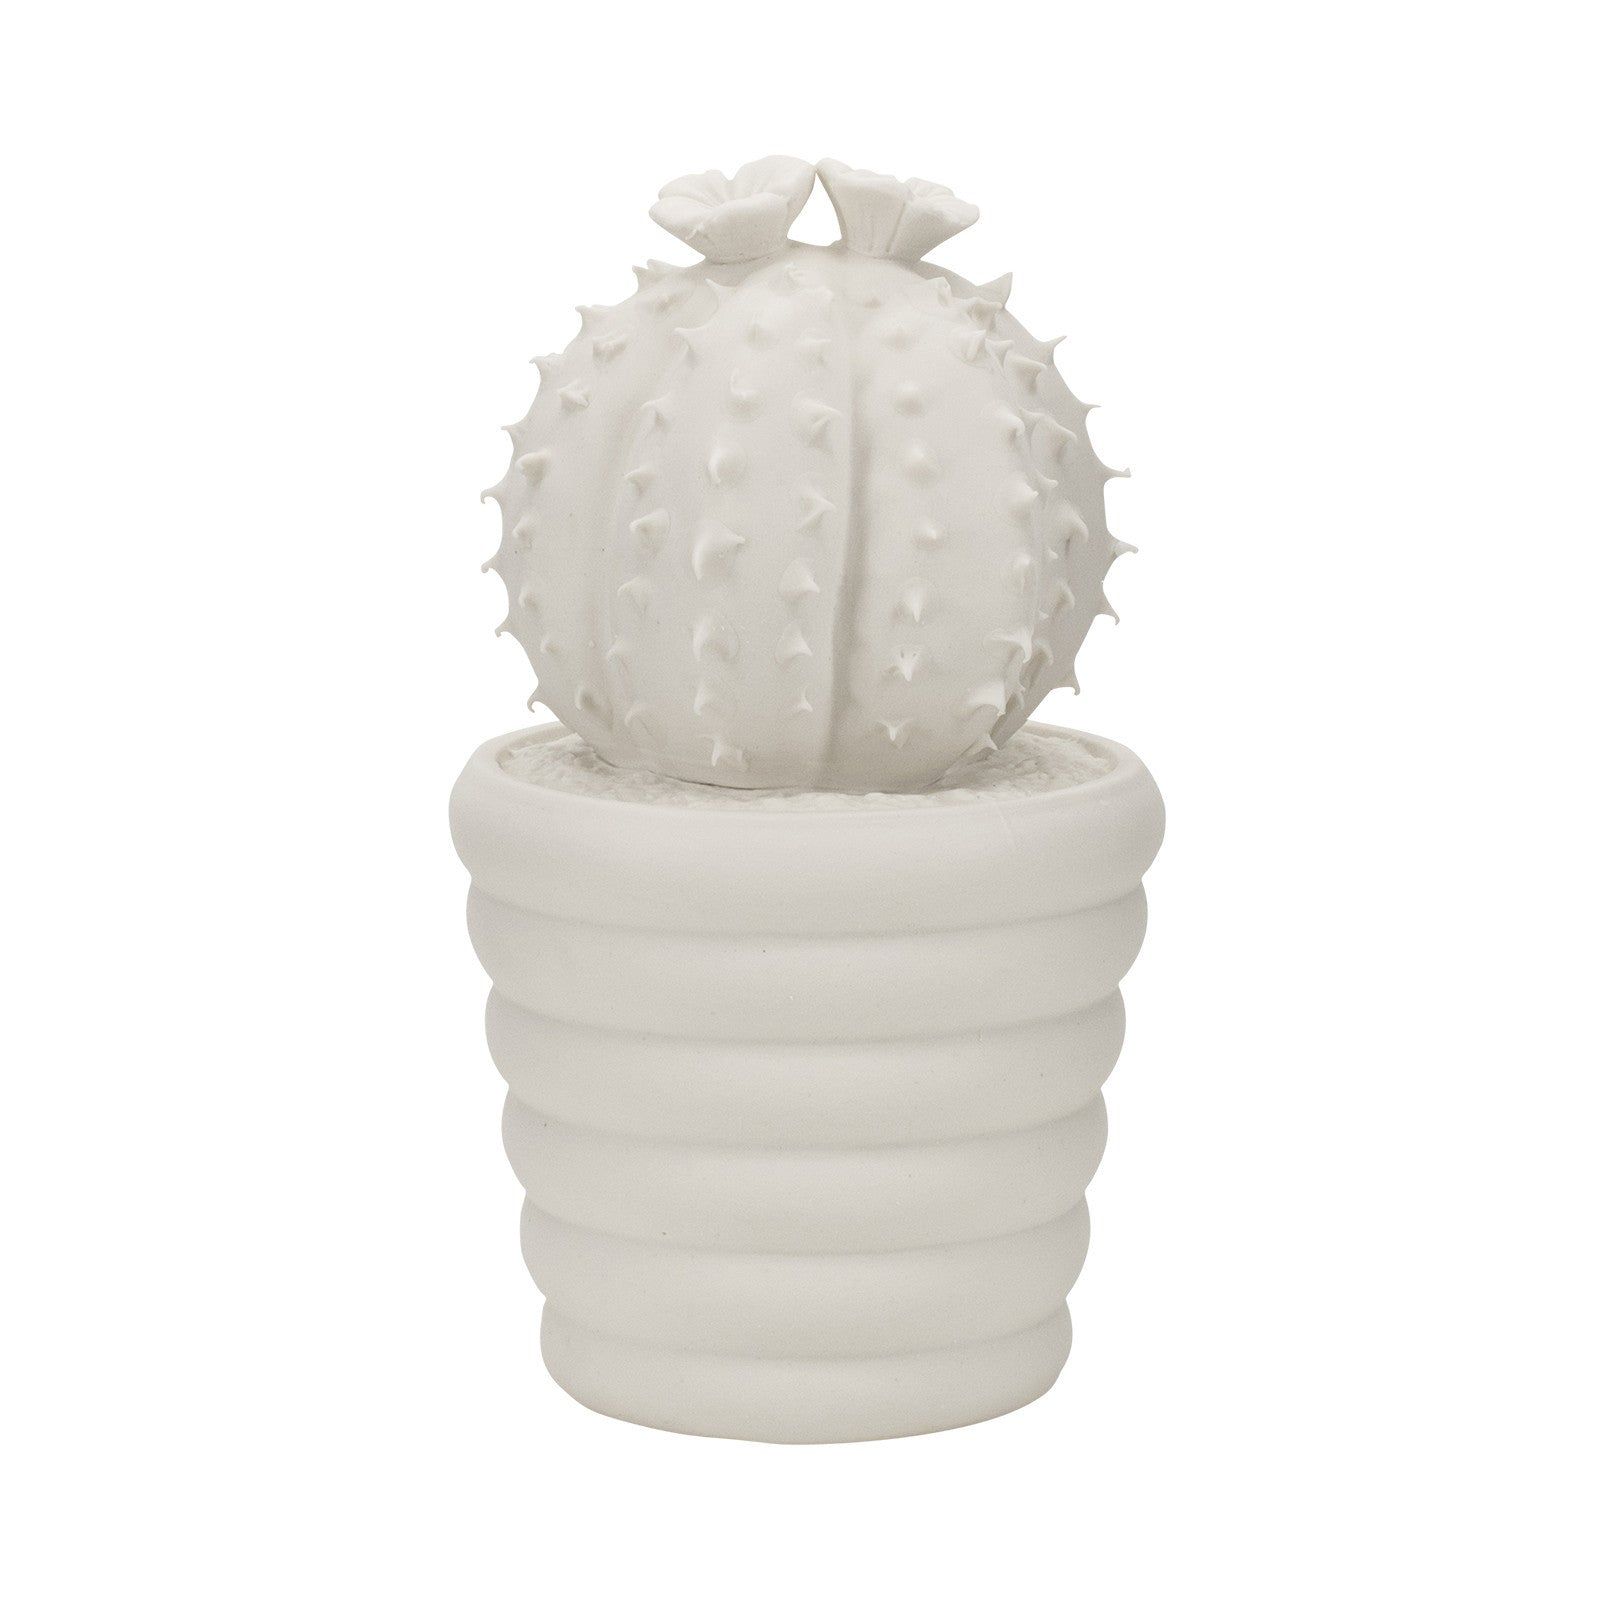 Prickly Melocactus Cactus Ornament in White